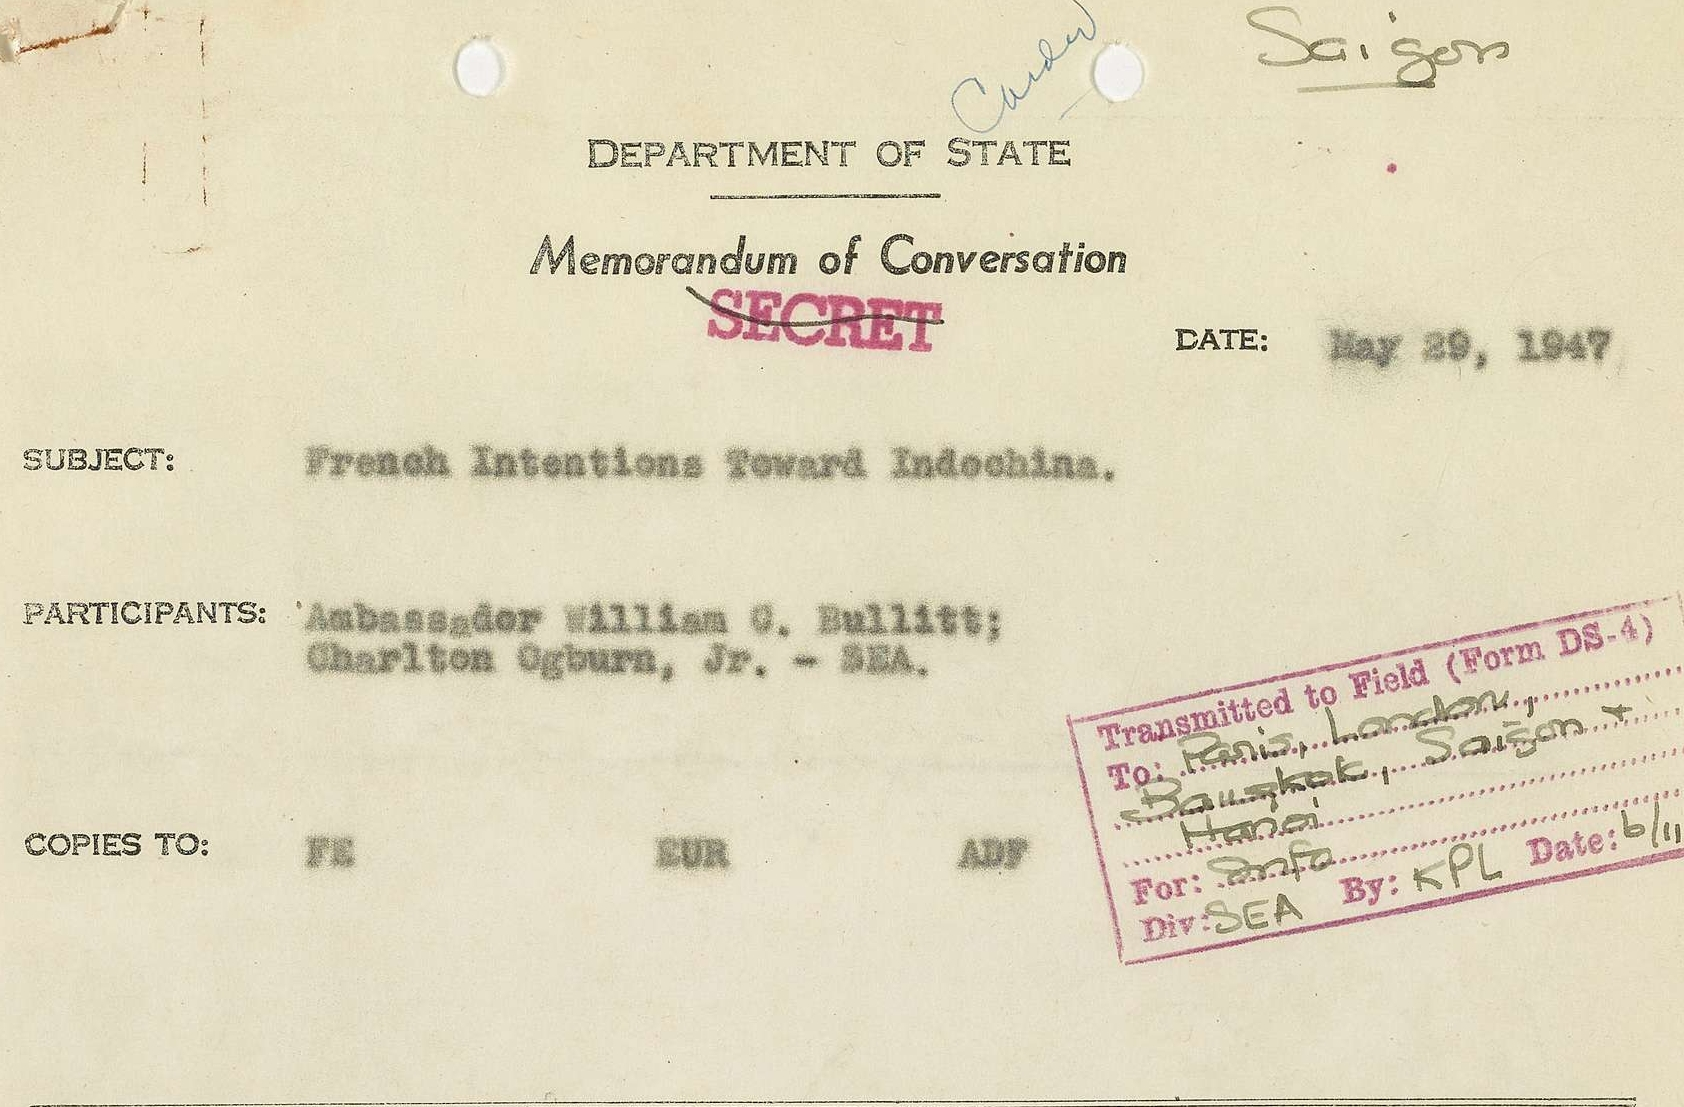 Memorandum of Conversation Between Ambassador William G. Bullitt and Charlton Coburg